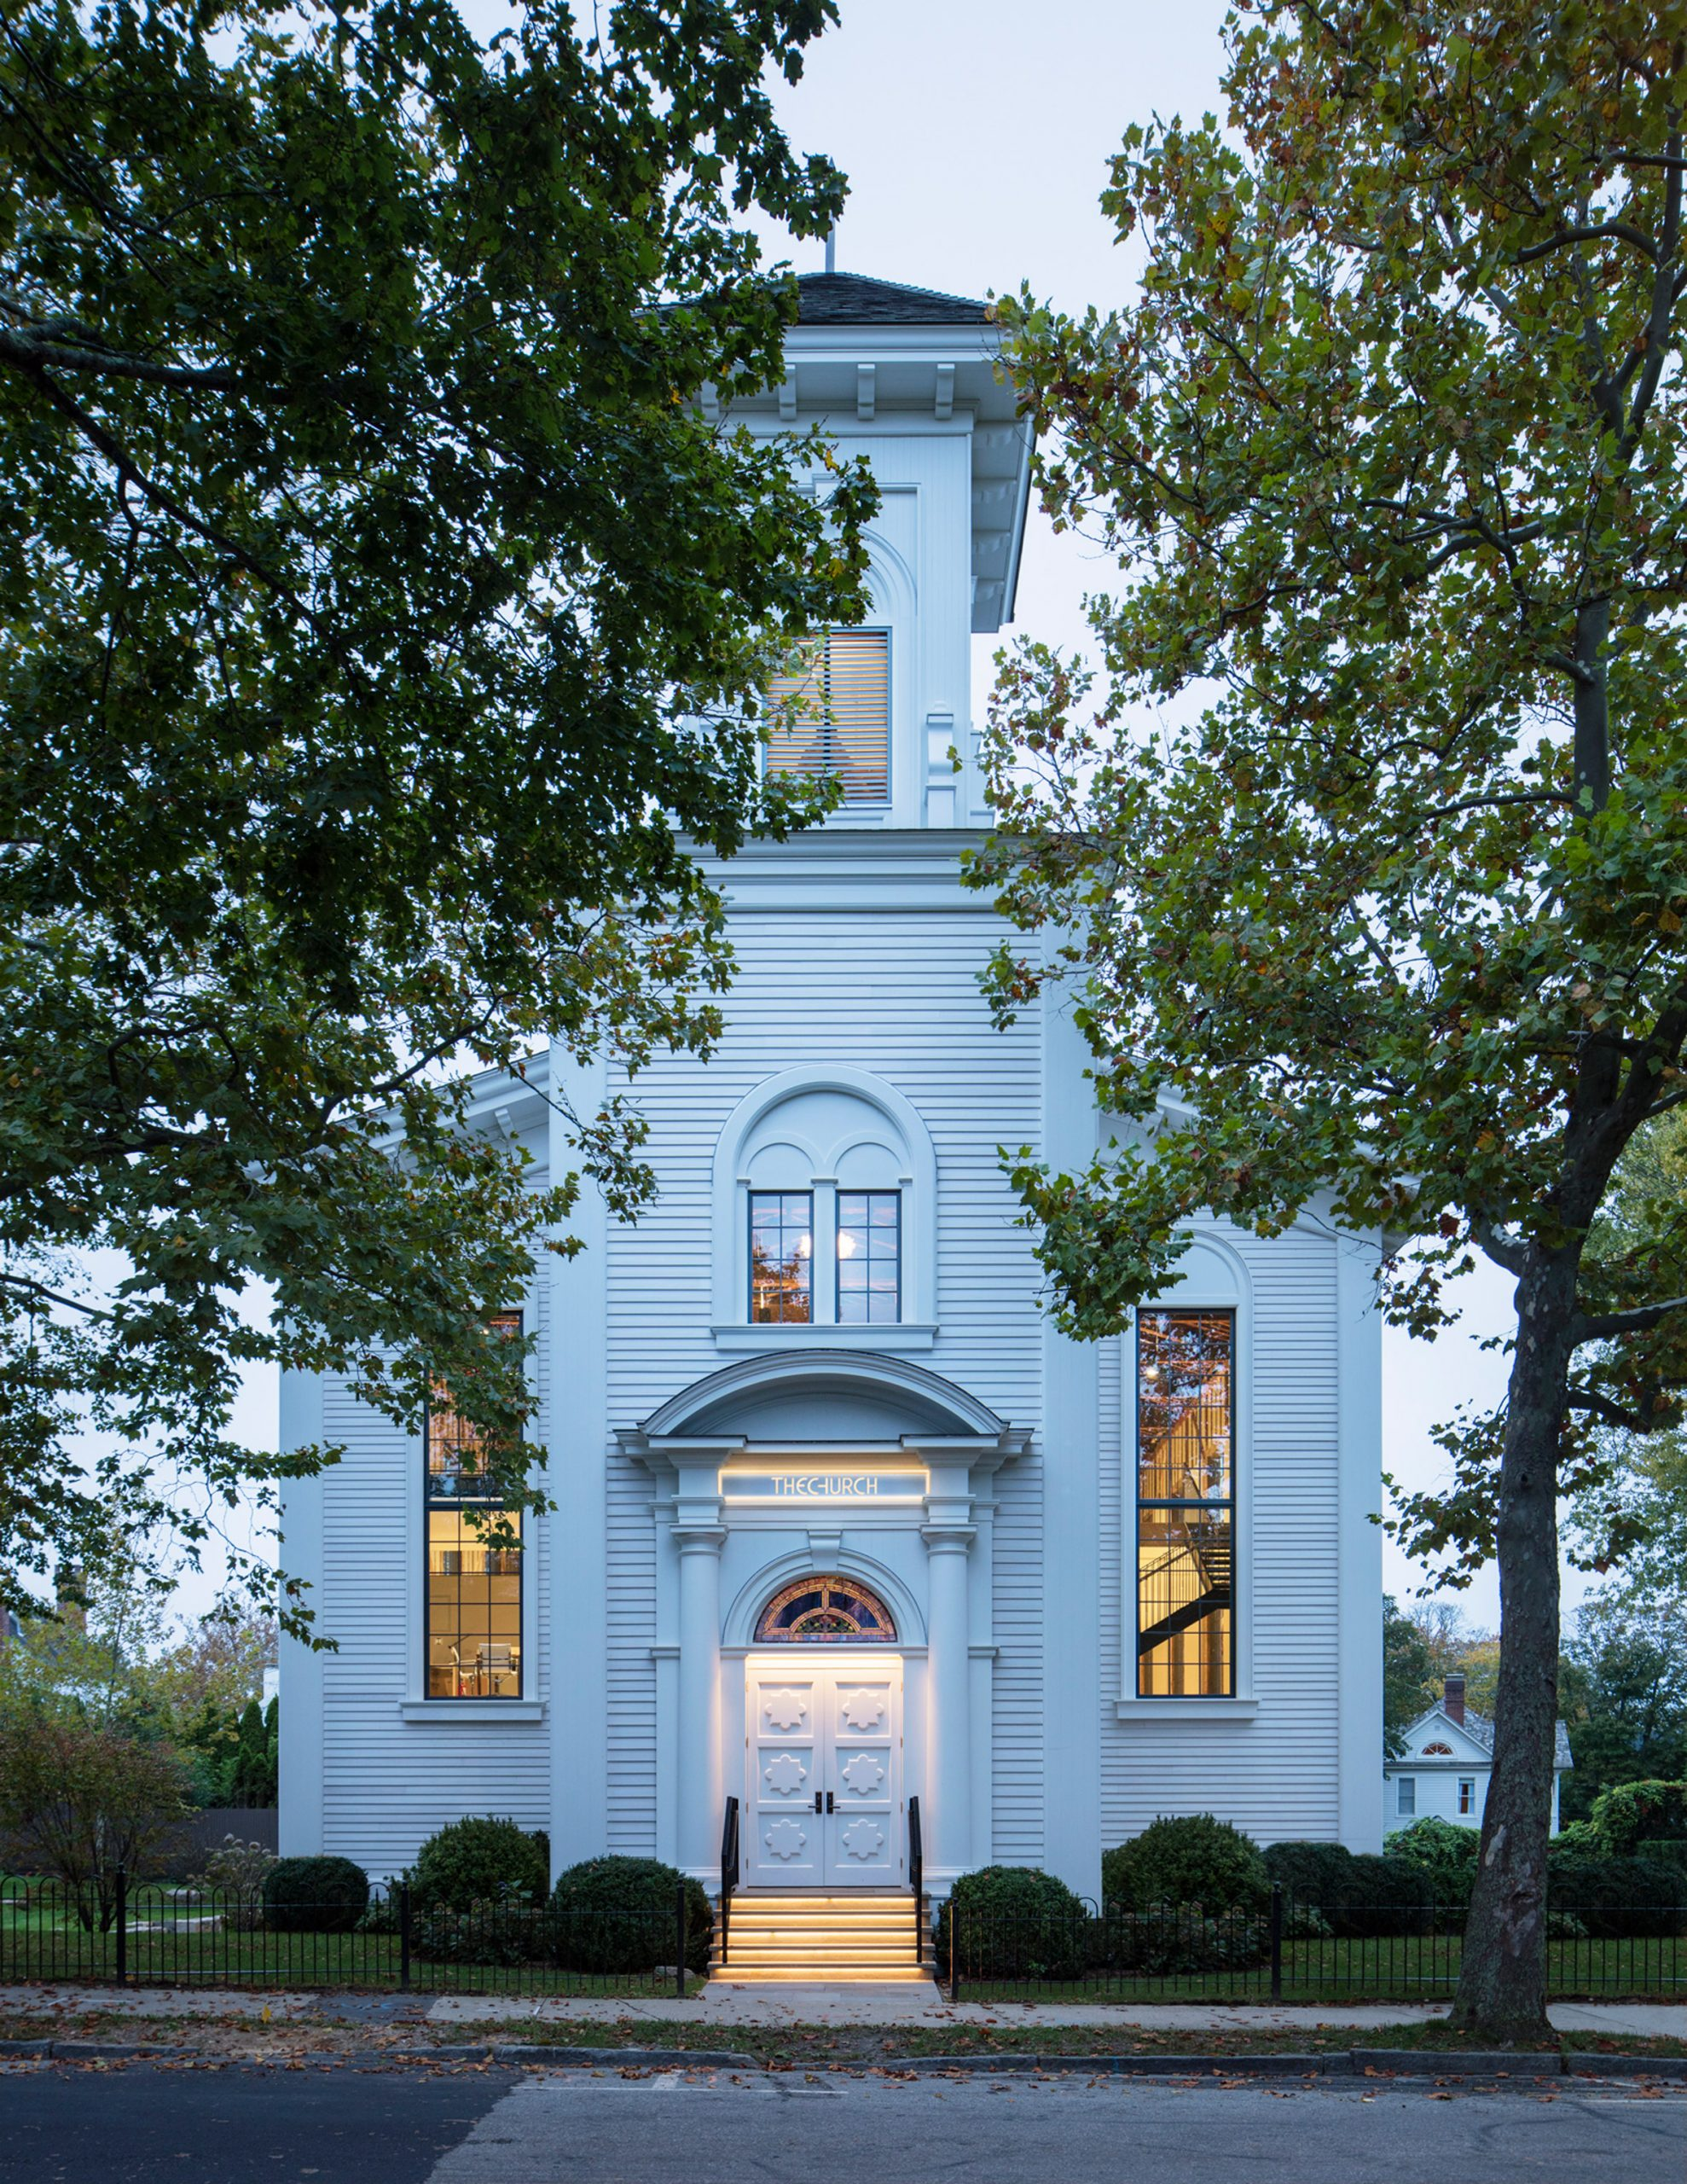 Bell tower of church adaptive reuse by Skolnick Architecture and Design Partnership